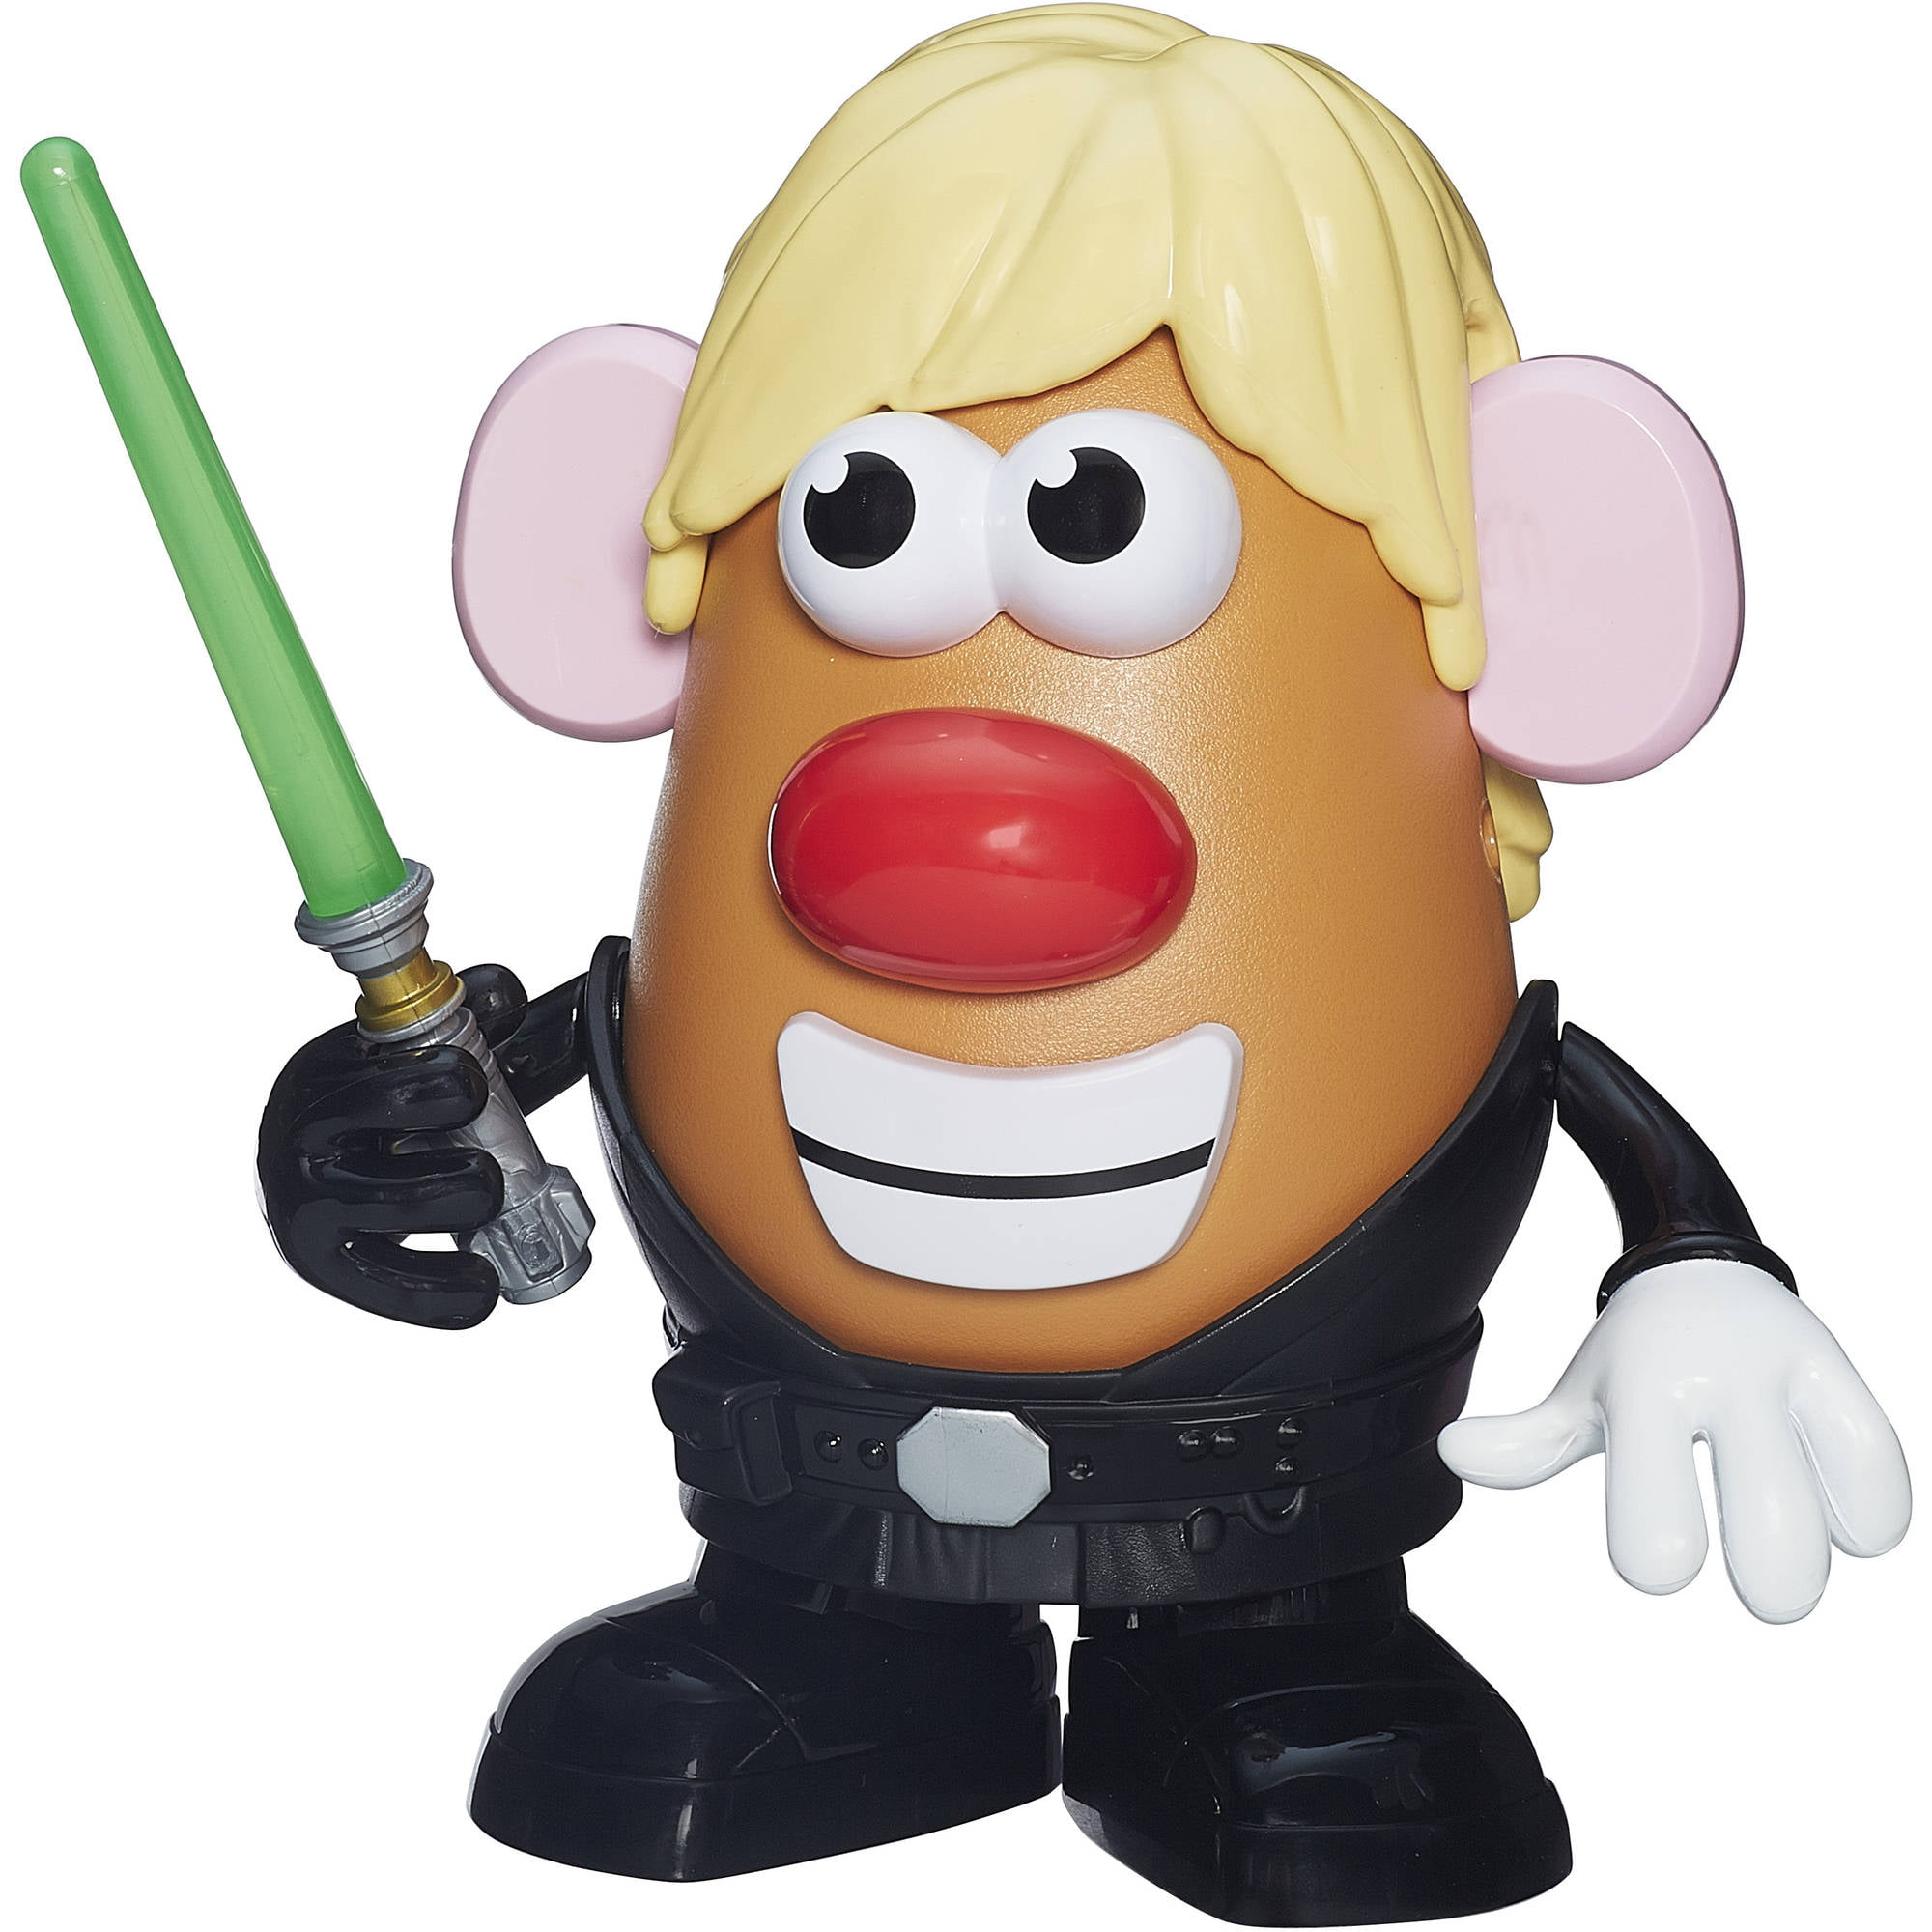 Playskool Mr. Potato Head Luke Frywalker by DONGGUAN HERALD TOYS CO.,LTD